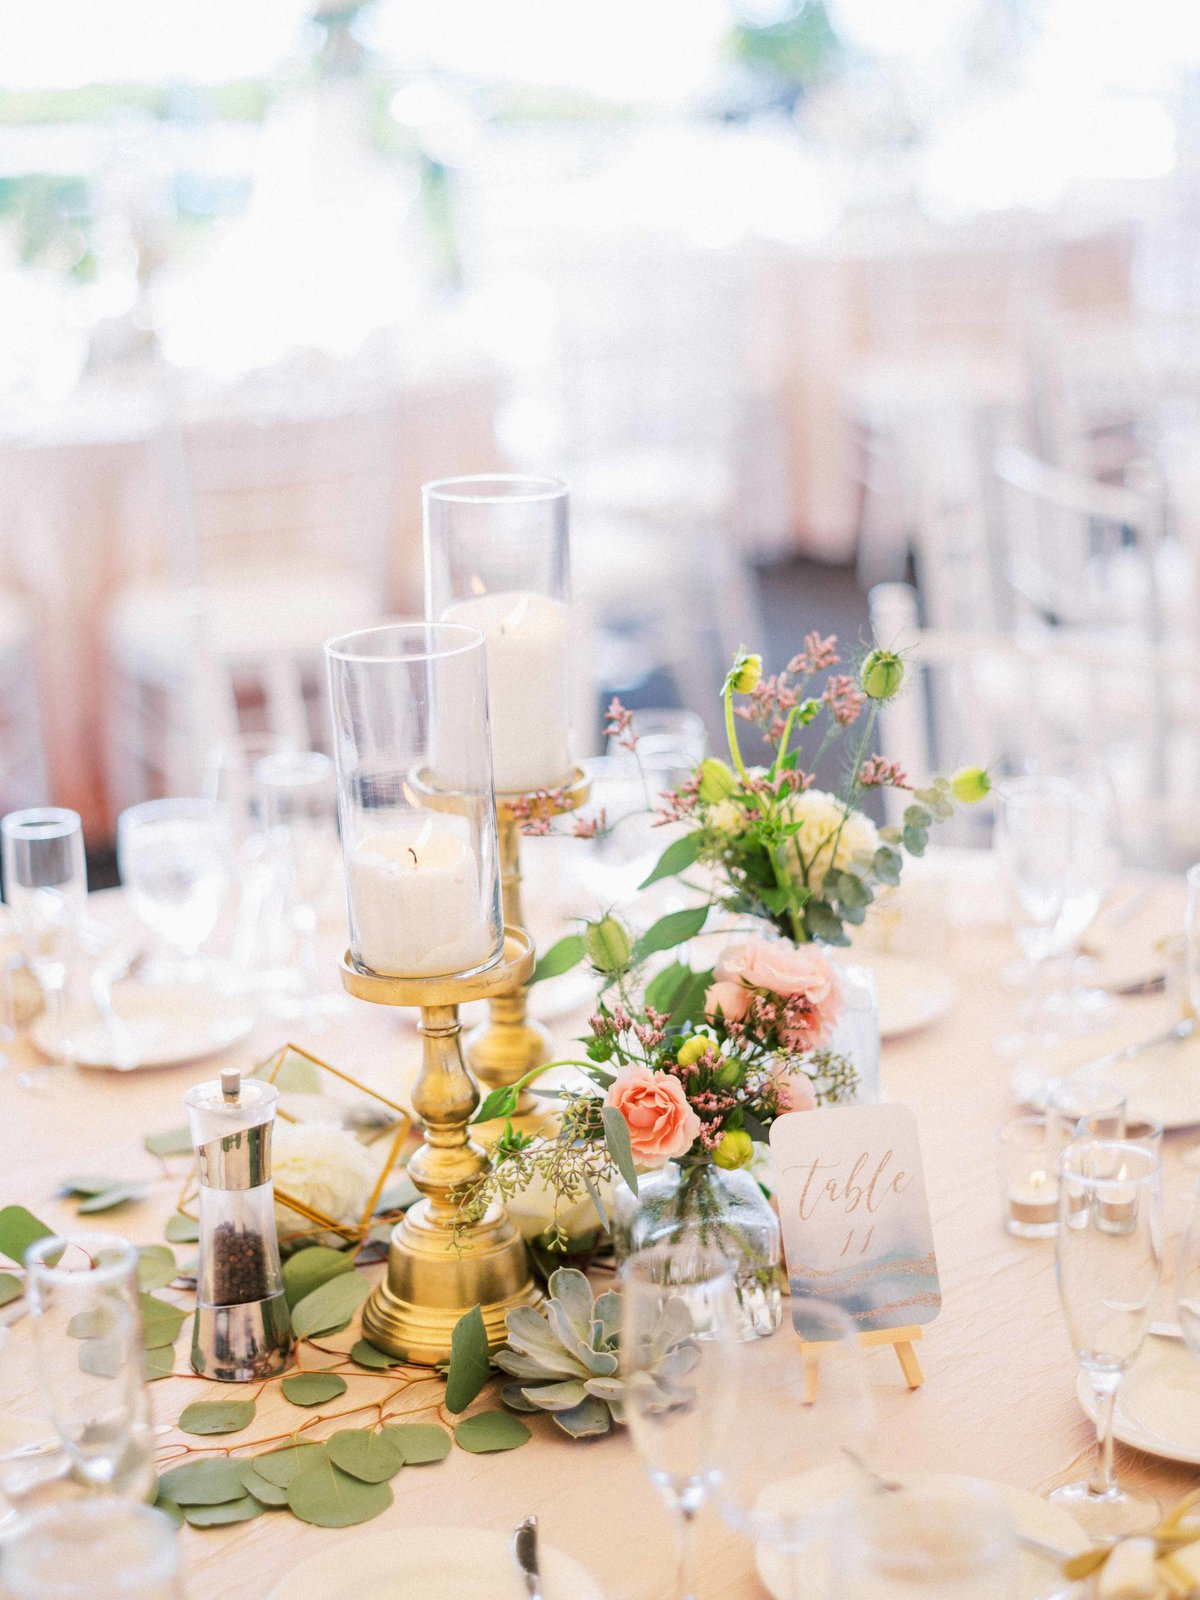 56greenery-summer-tent-wedding-flora-nova-design